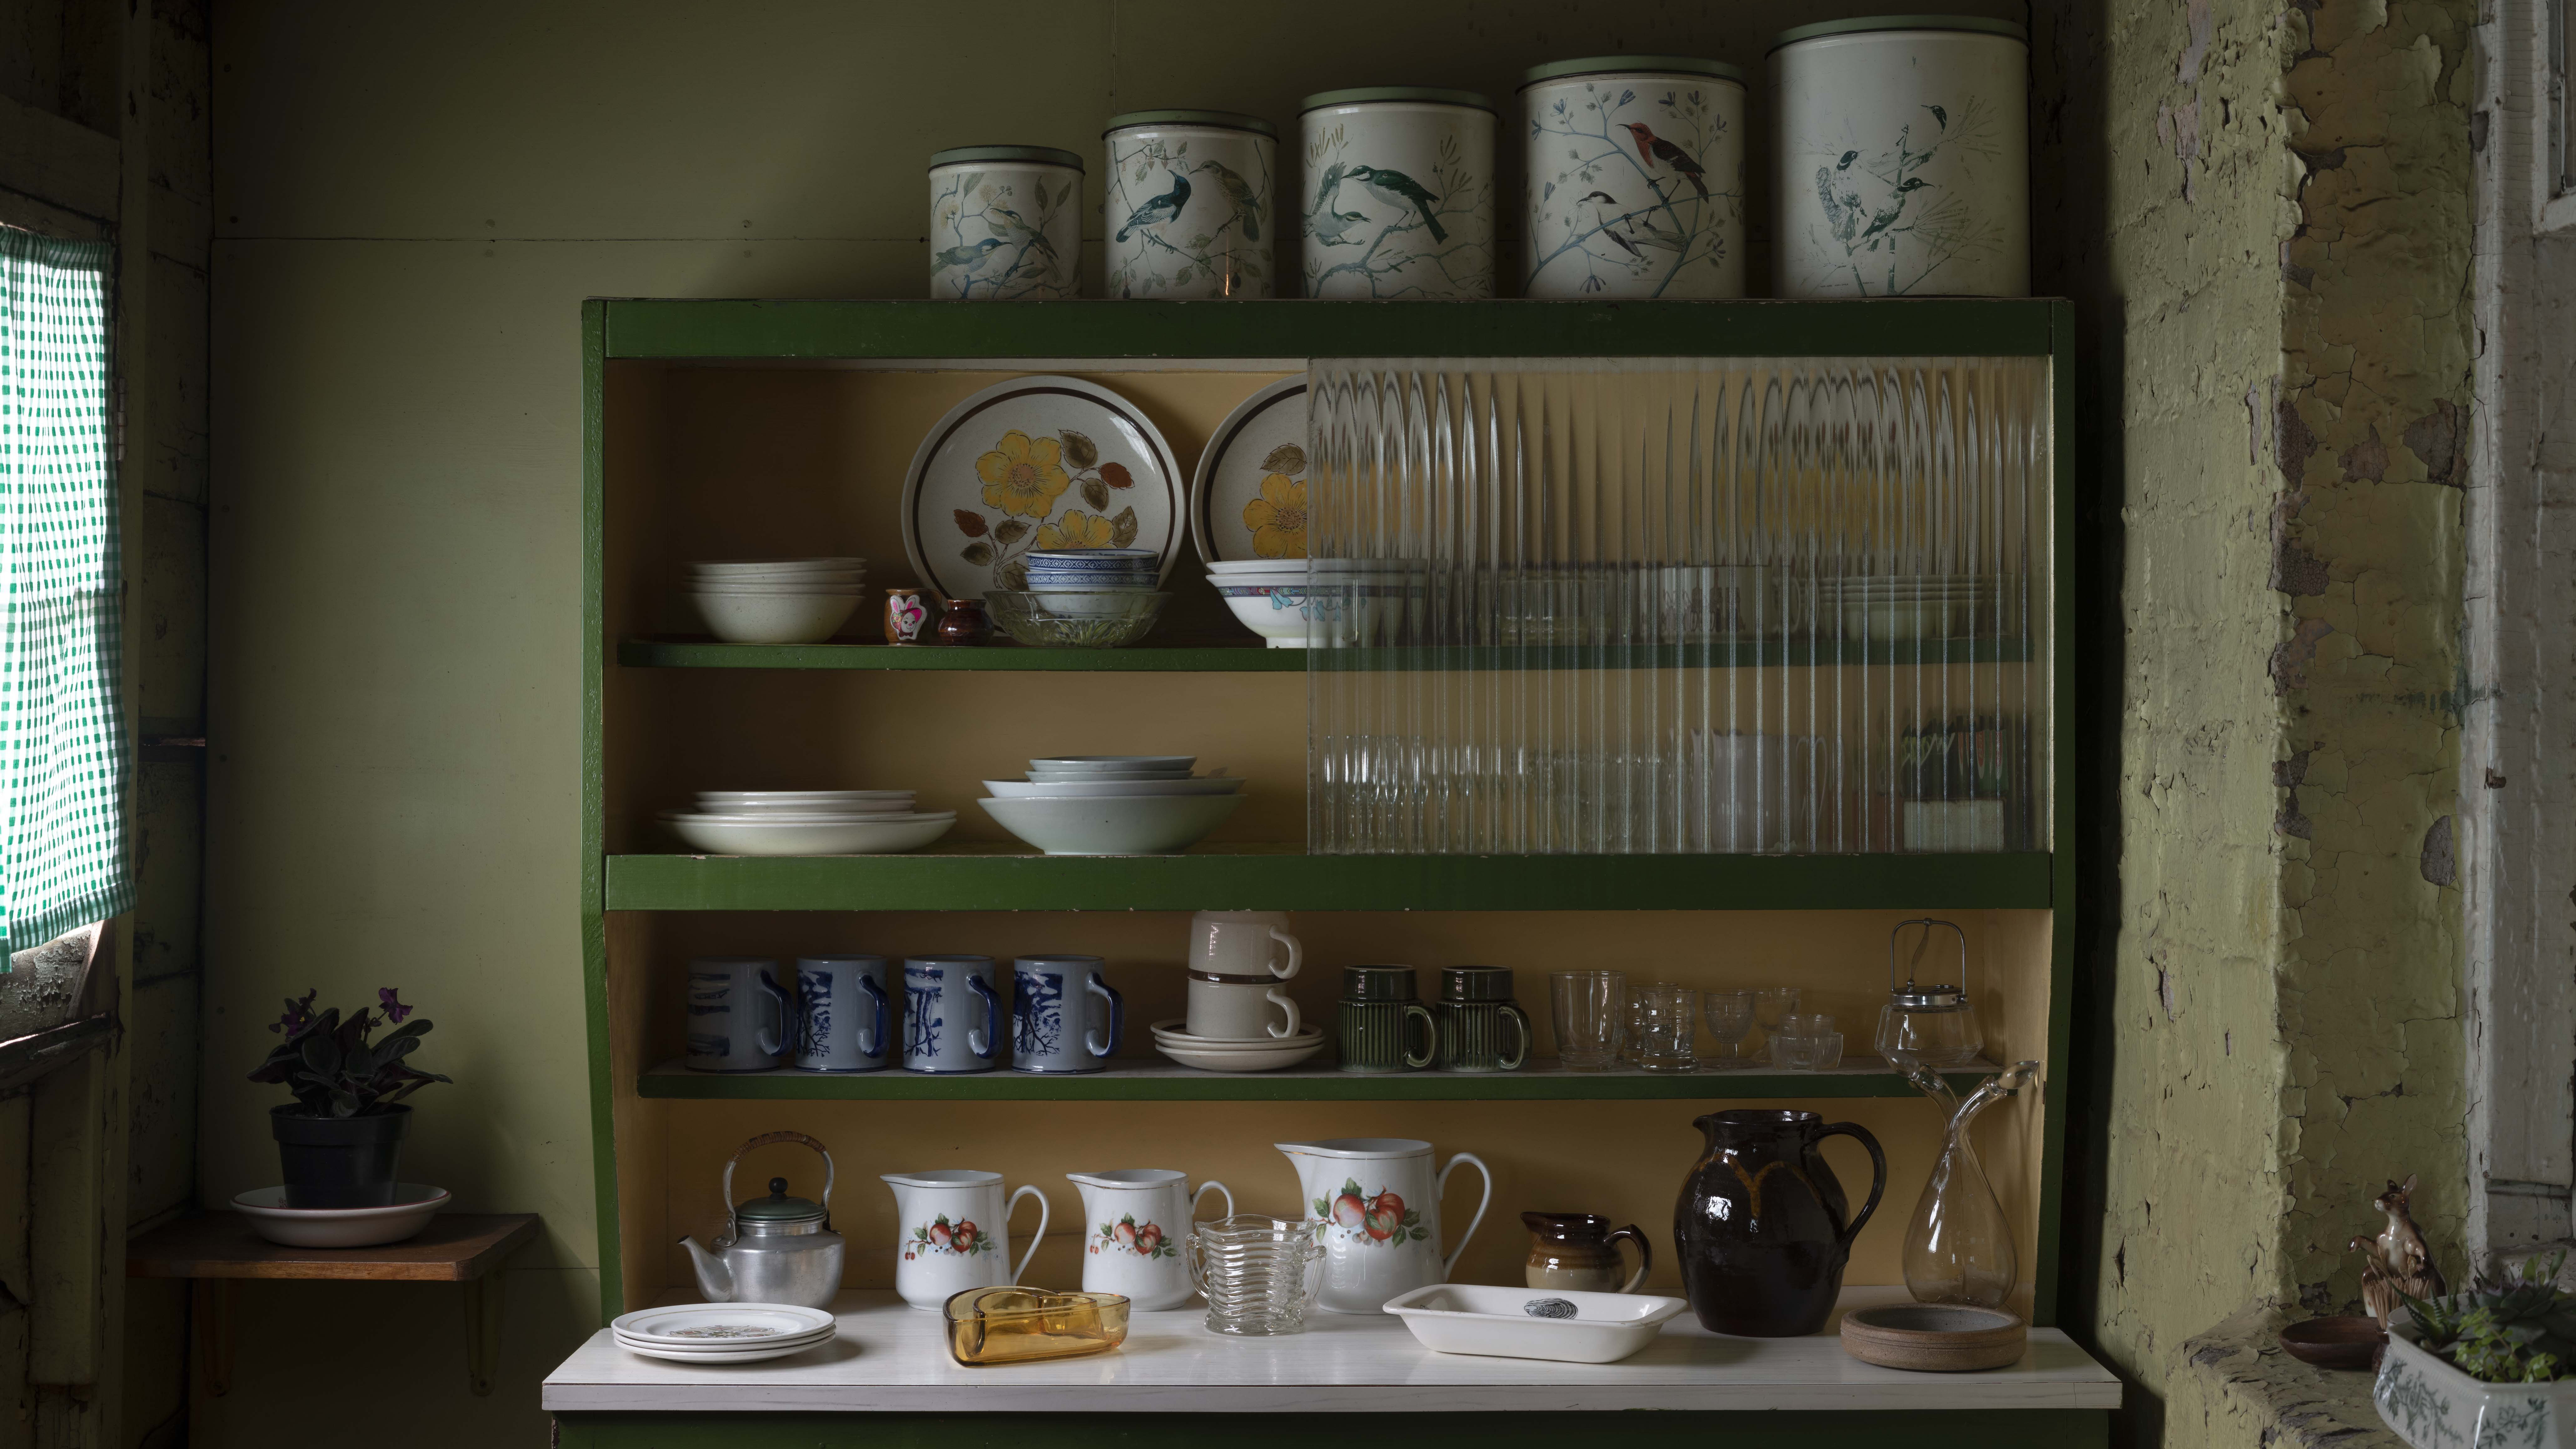 Dresser with array of tins, crockery and other kitchen items, lit by gingham-curtained window on left of photo.